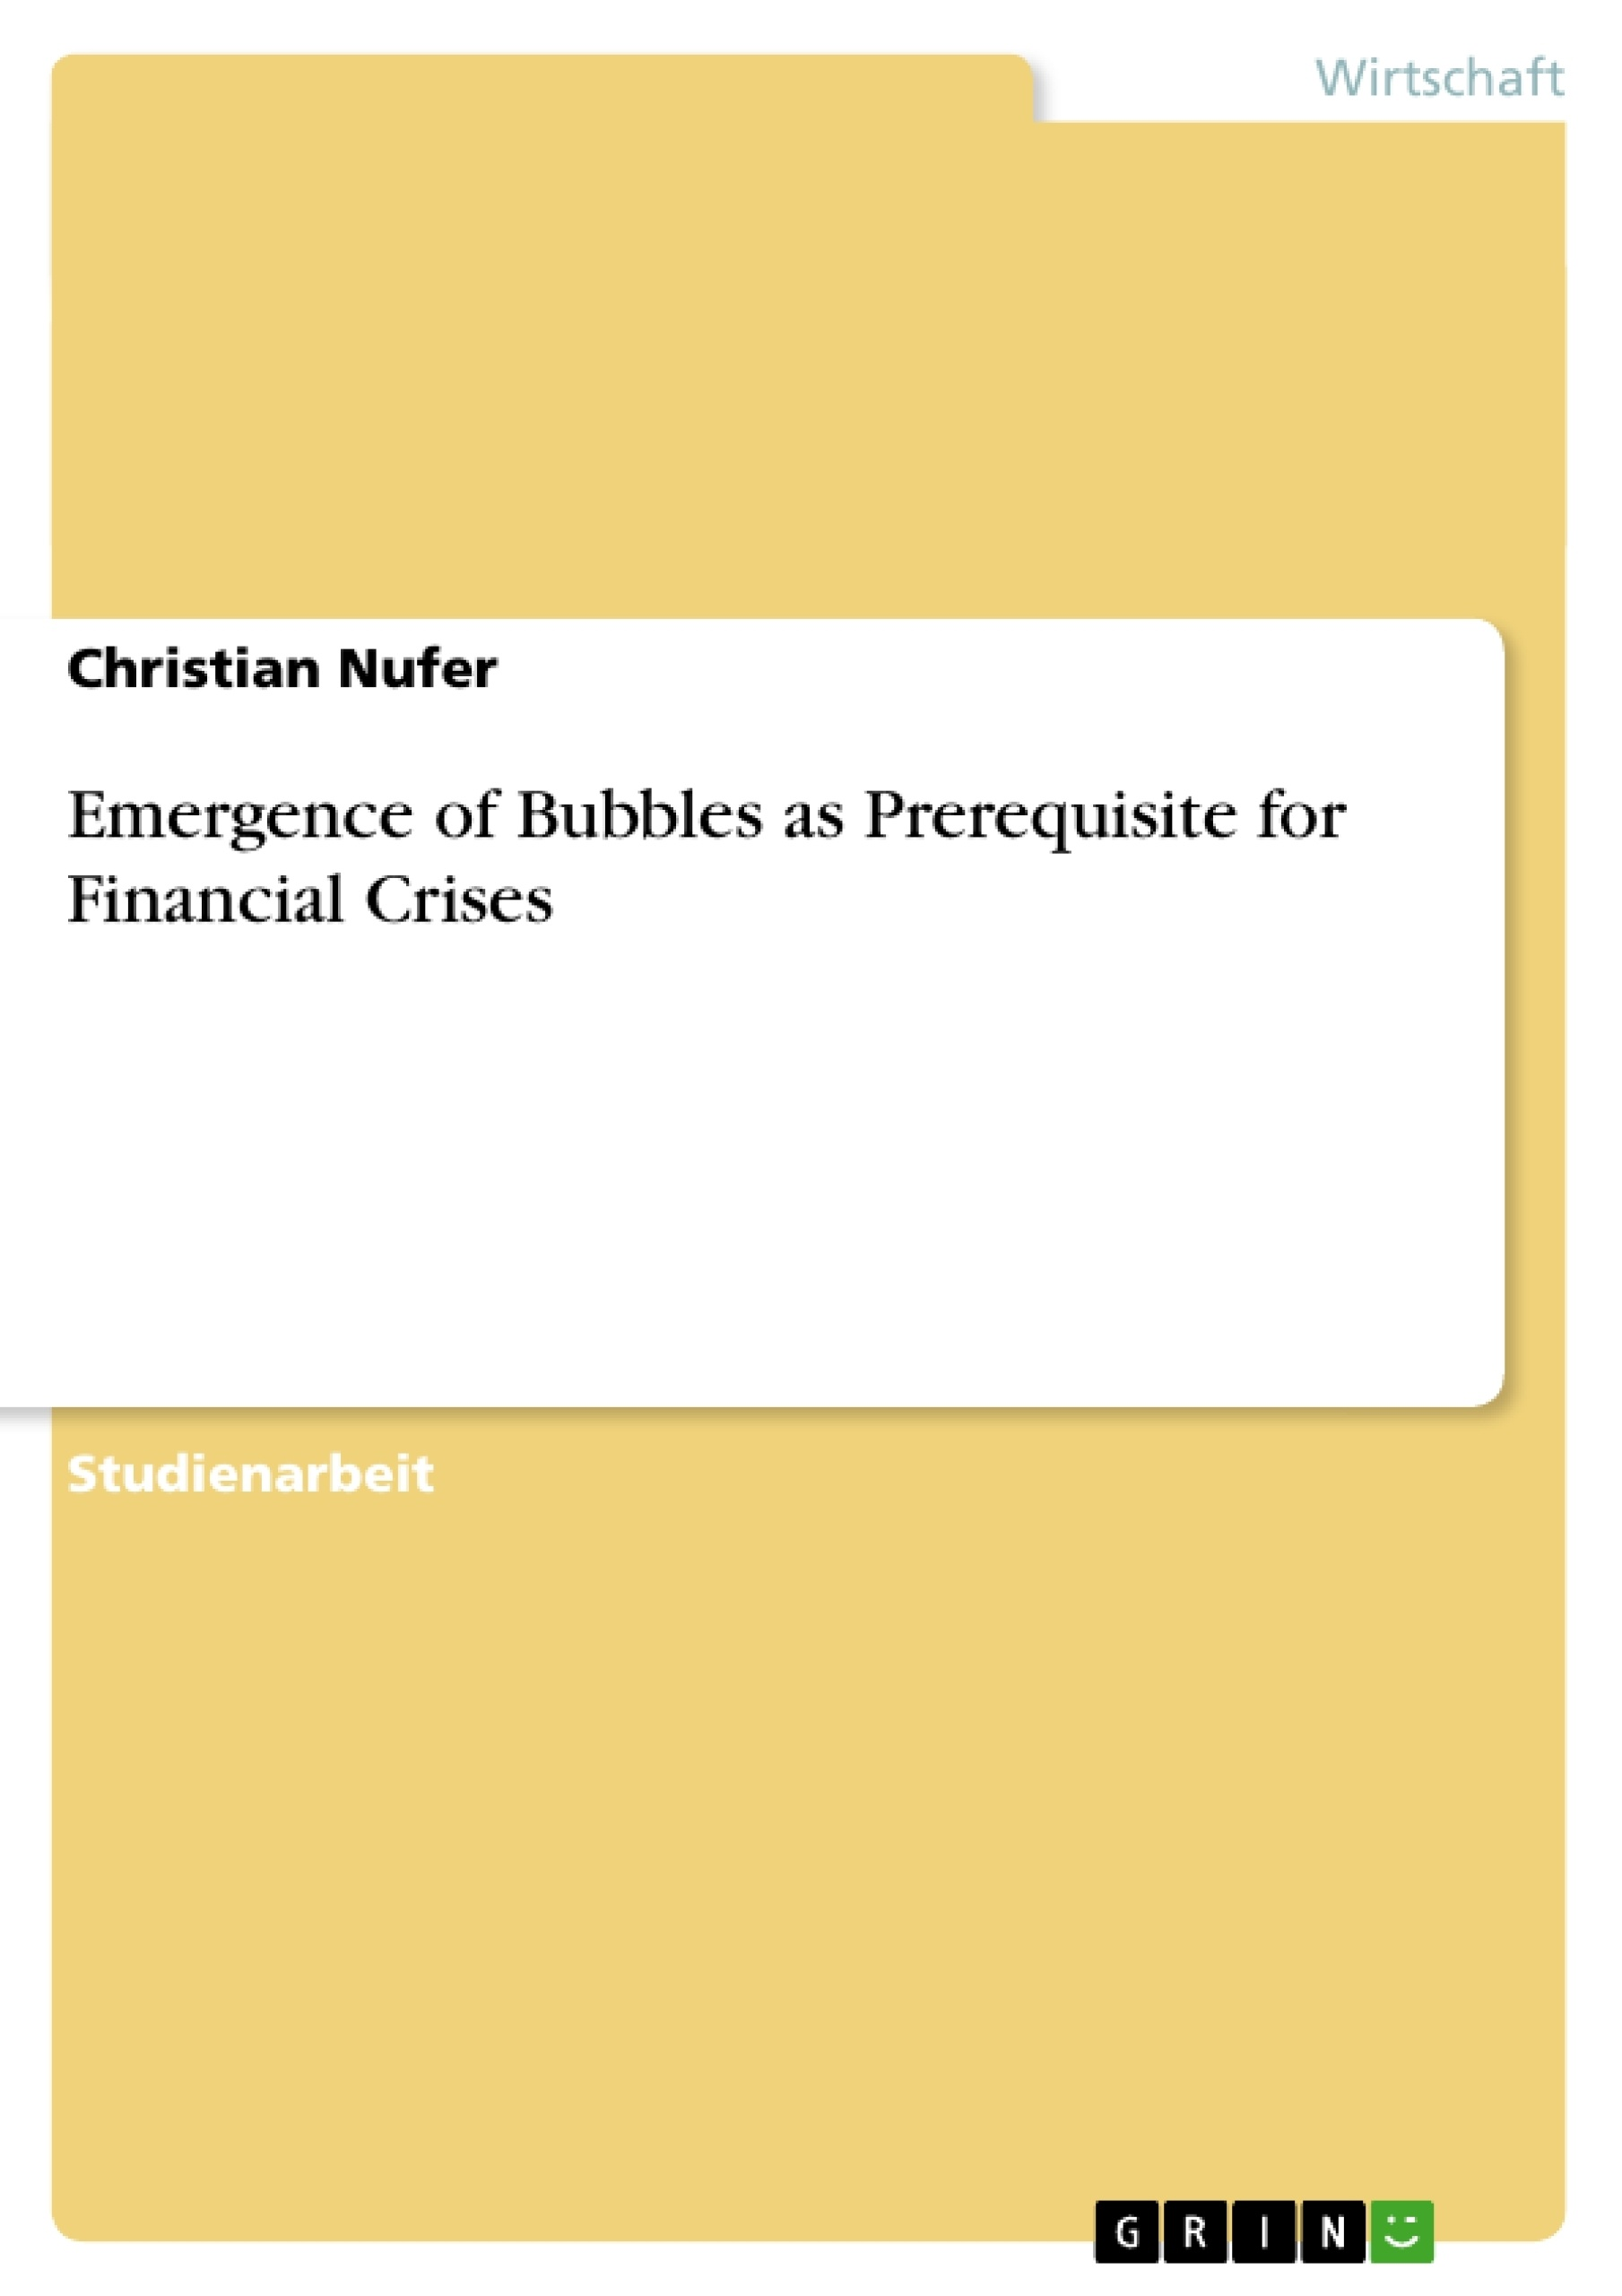 Titel: Emergence of Bubbles as Prerequisite for Financial Crises